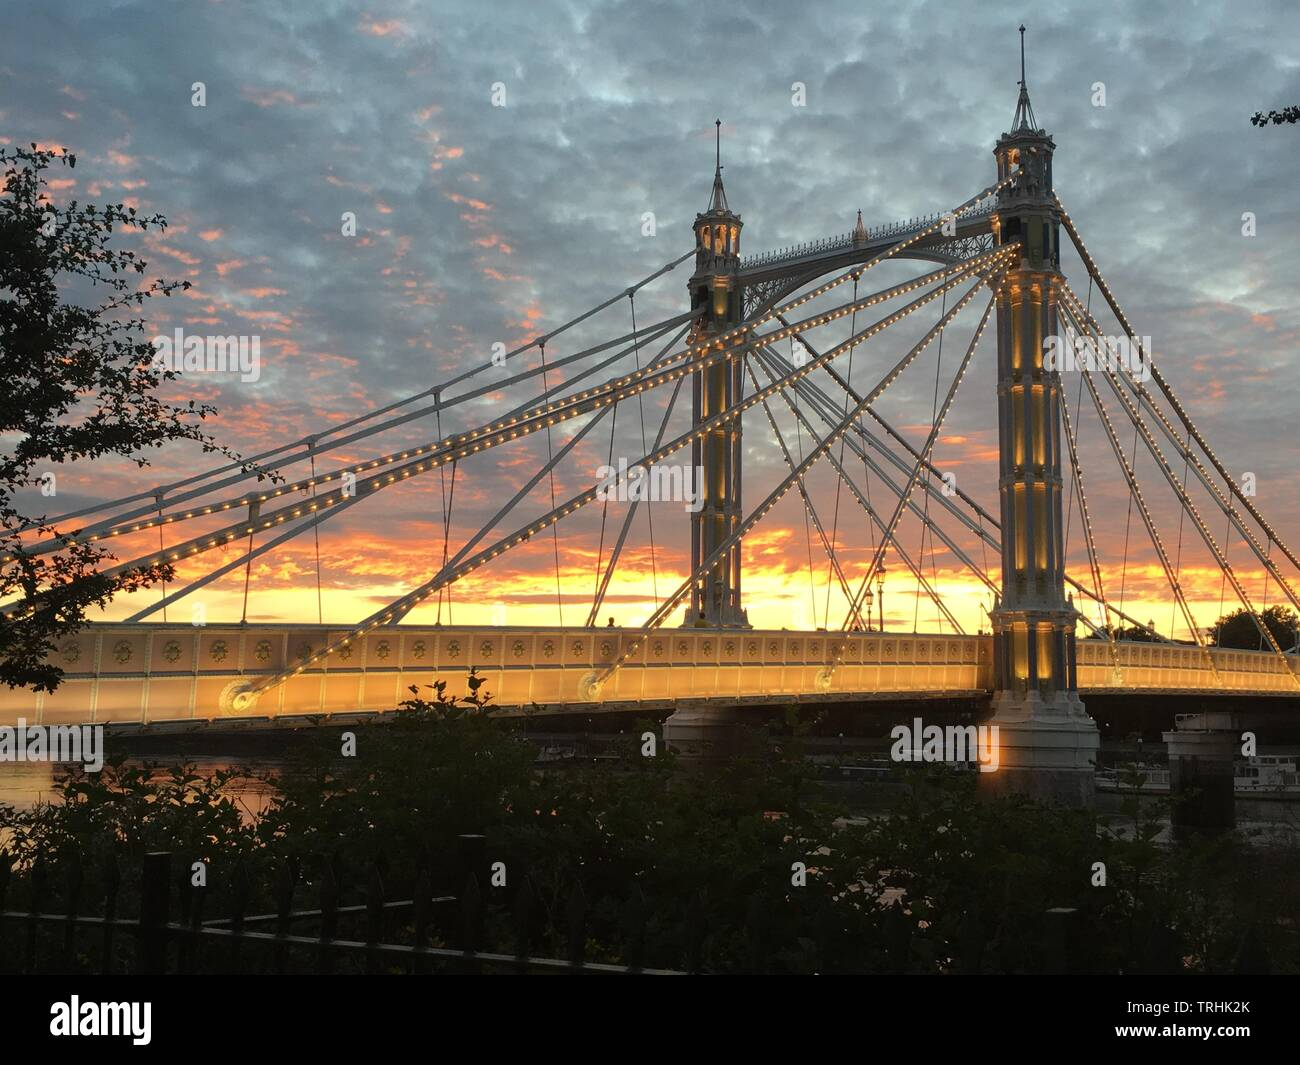 Sunset Albert Bridge London 1 - Stock Image